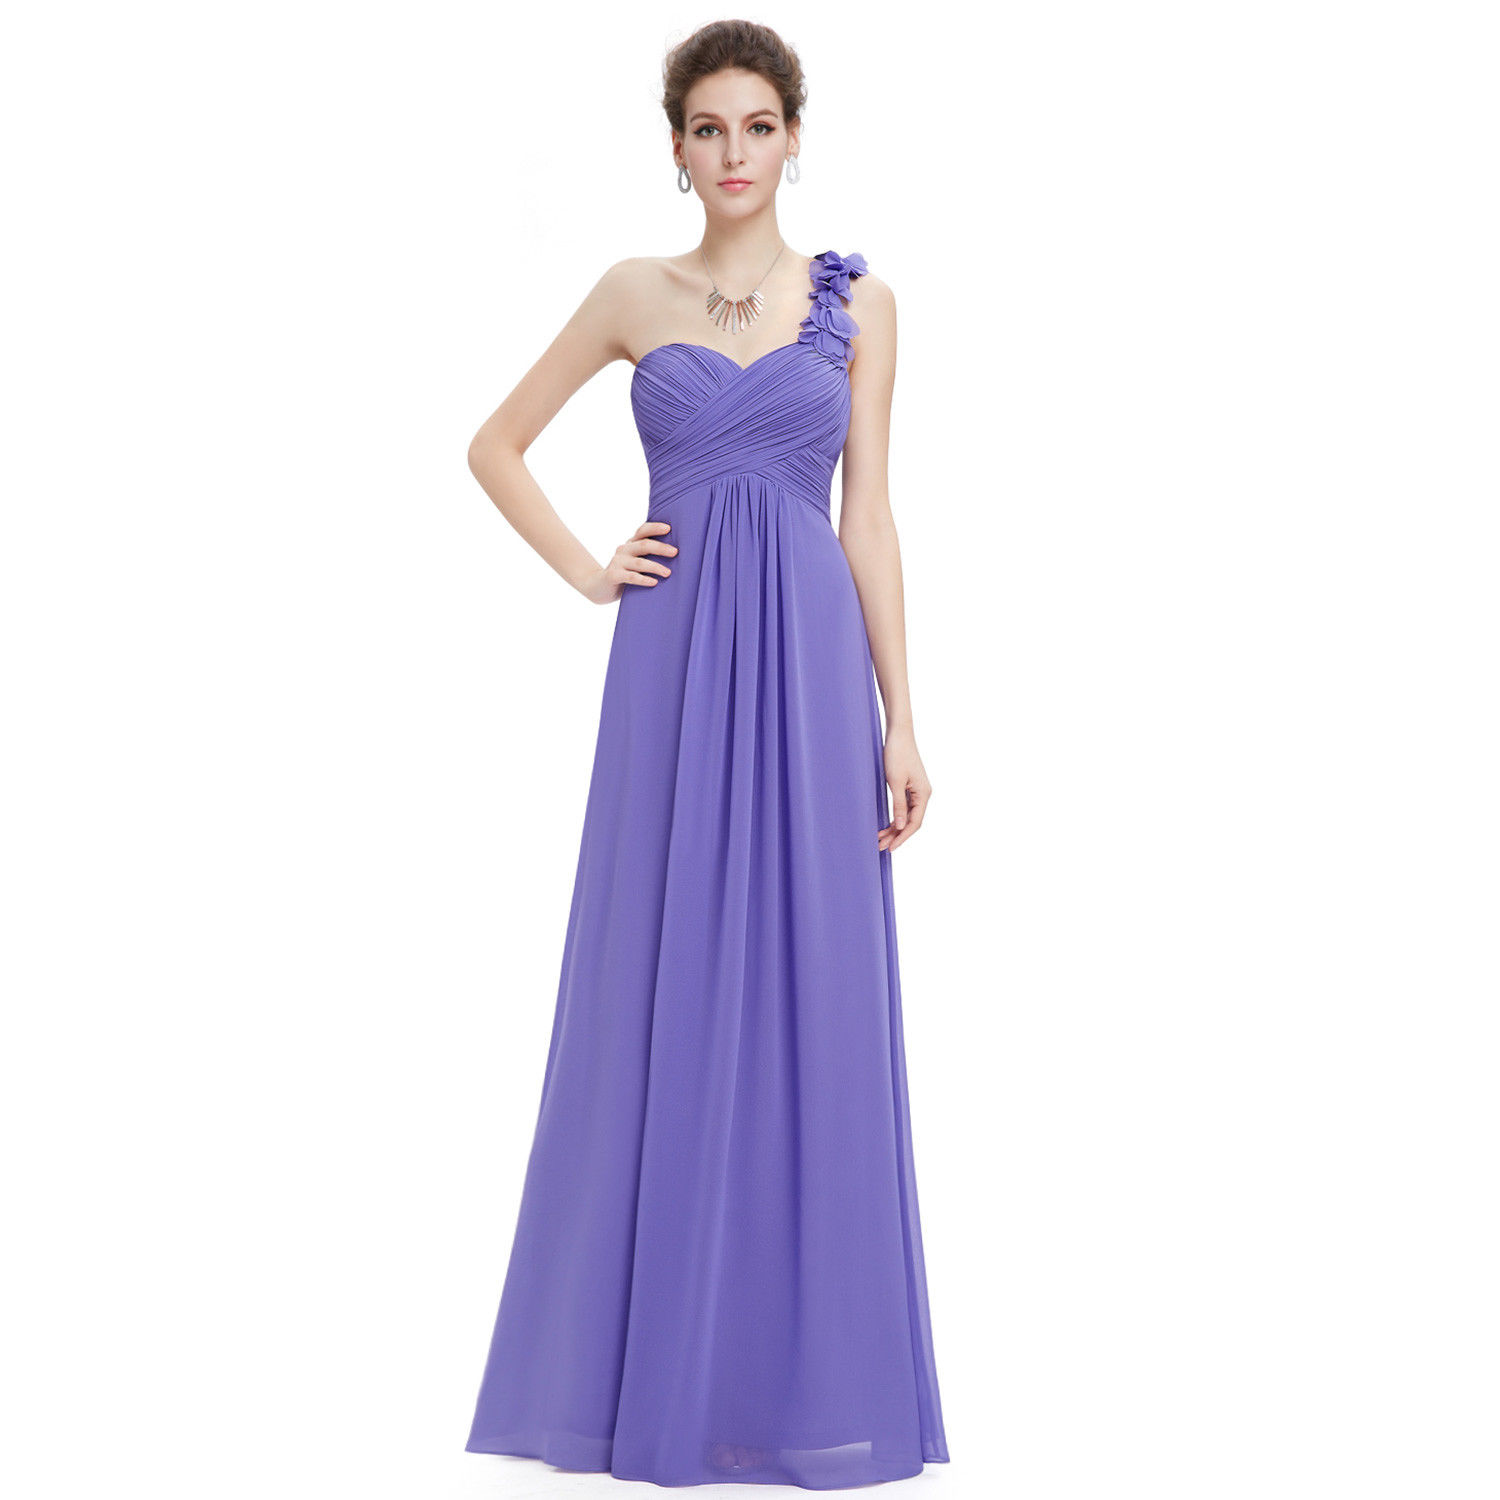 ff3e232f7d9 Ever-Pretty One-shoulder Chiffon Bridesmaid Dress Long Evening Prom  Periwinkle